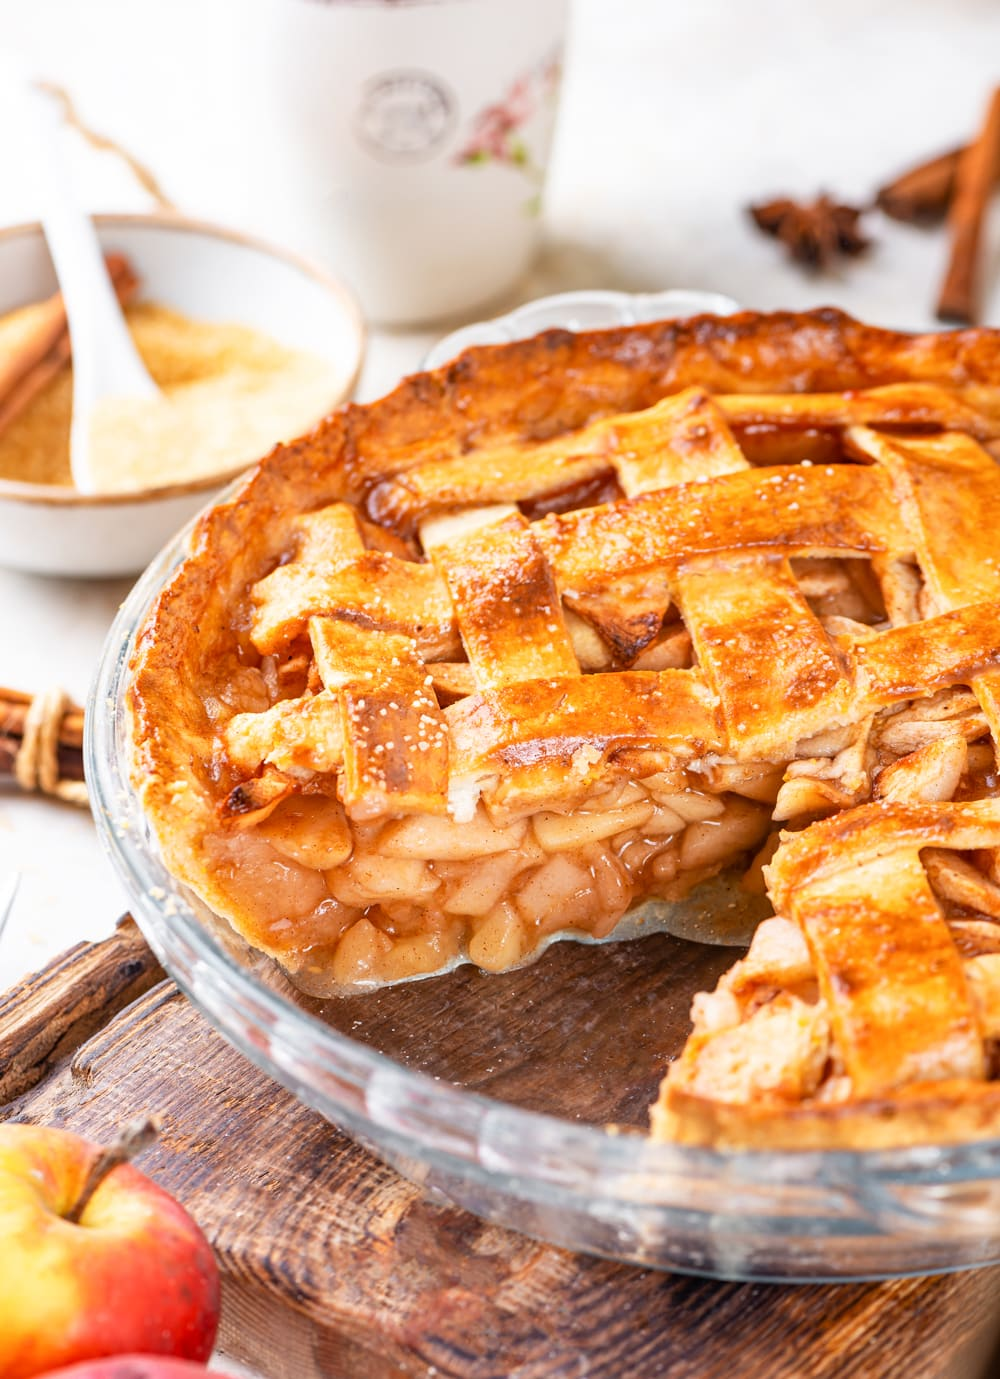 A vegan apple pie in a glass pie dish with one sliced taken out of the pie. The pie dish is on a wooden cutting board with a bowl of sliced apples behind it.